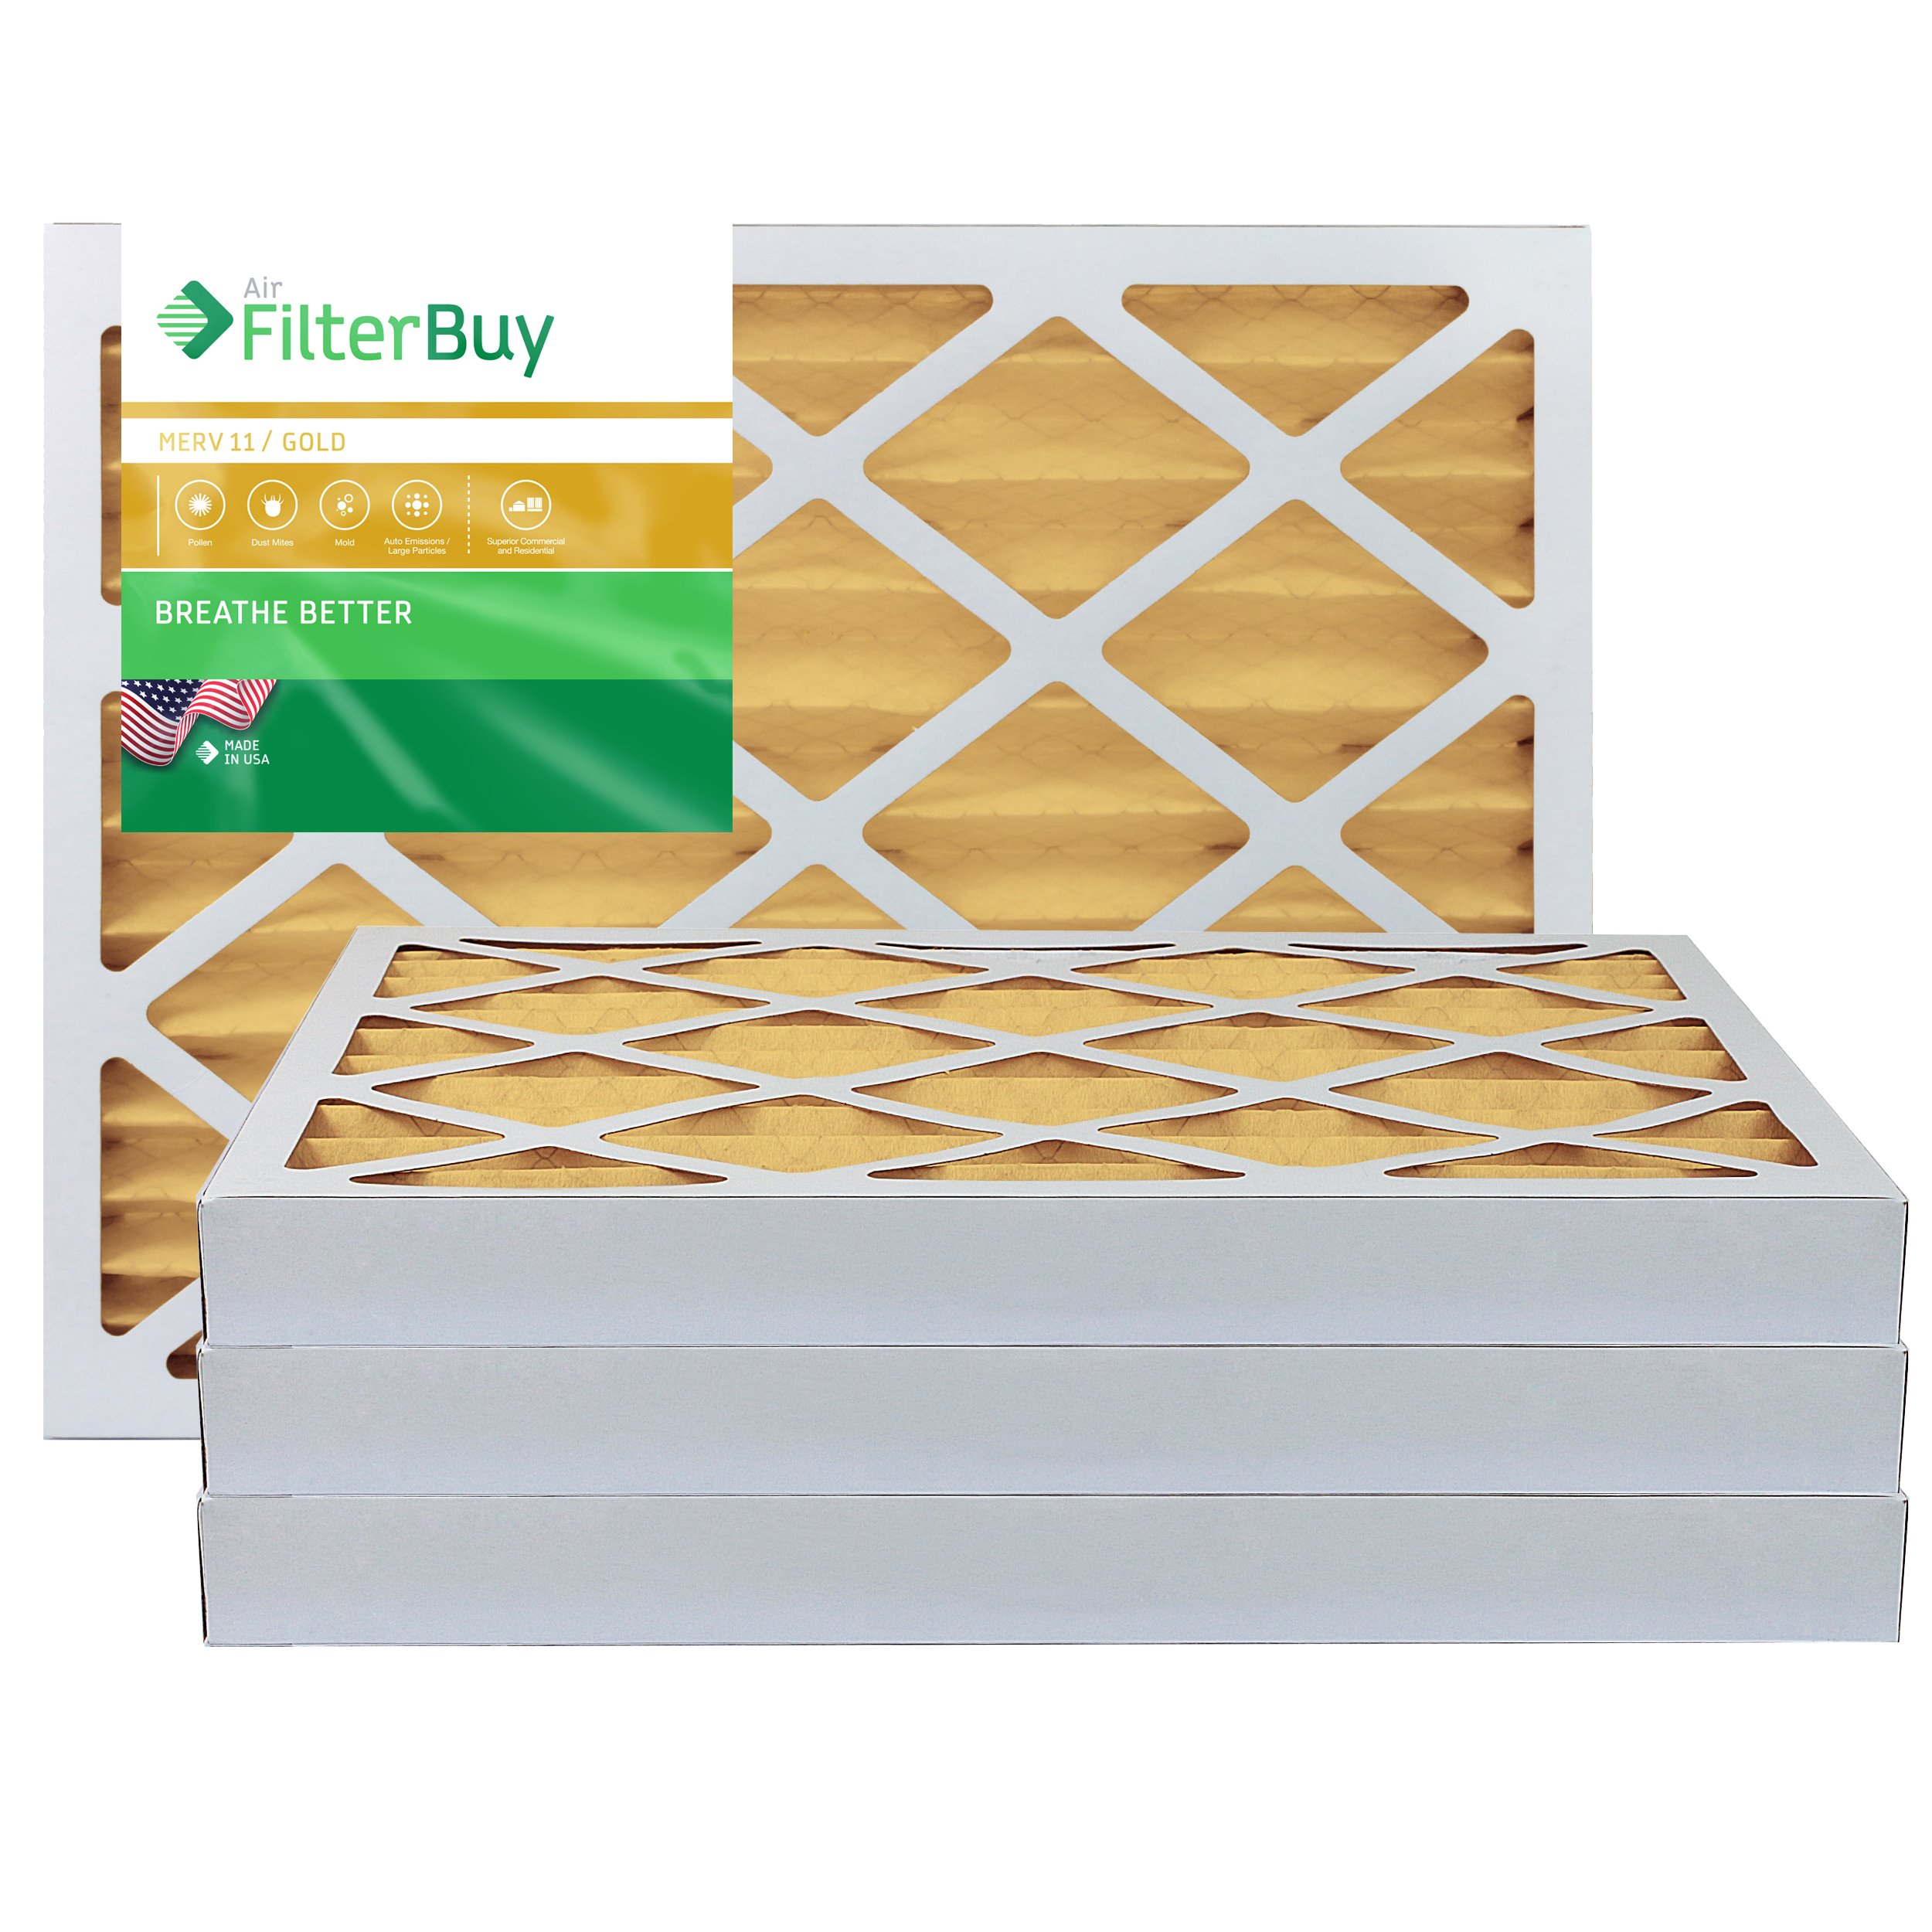 AFB Gold MERV 11 30x36x2 Pleated AC Furnace Air Filter. Pack of 4 Filters. 100% produced in the USA.